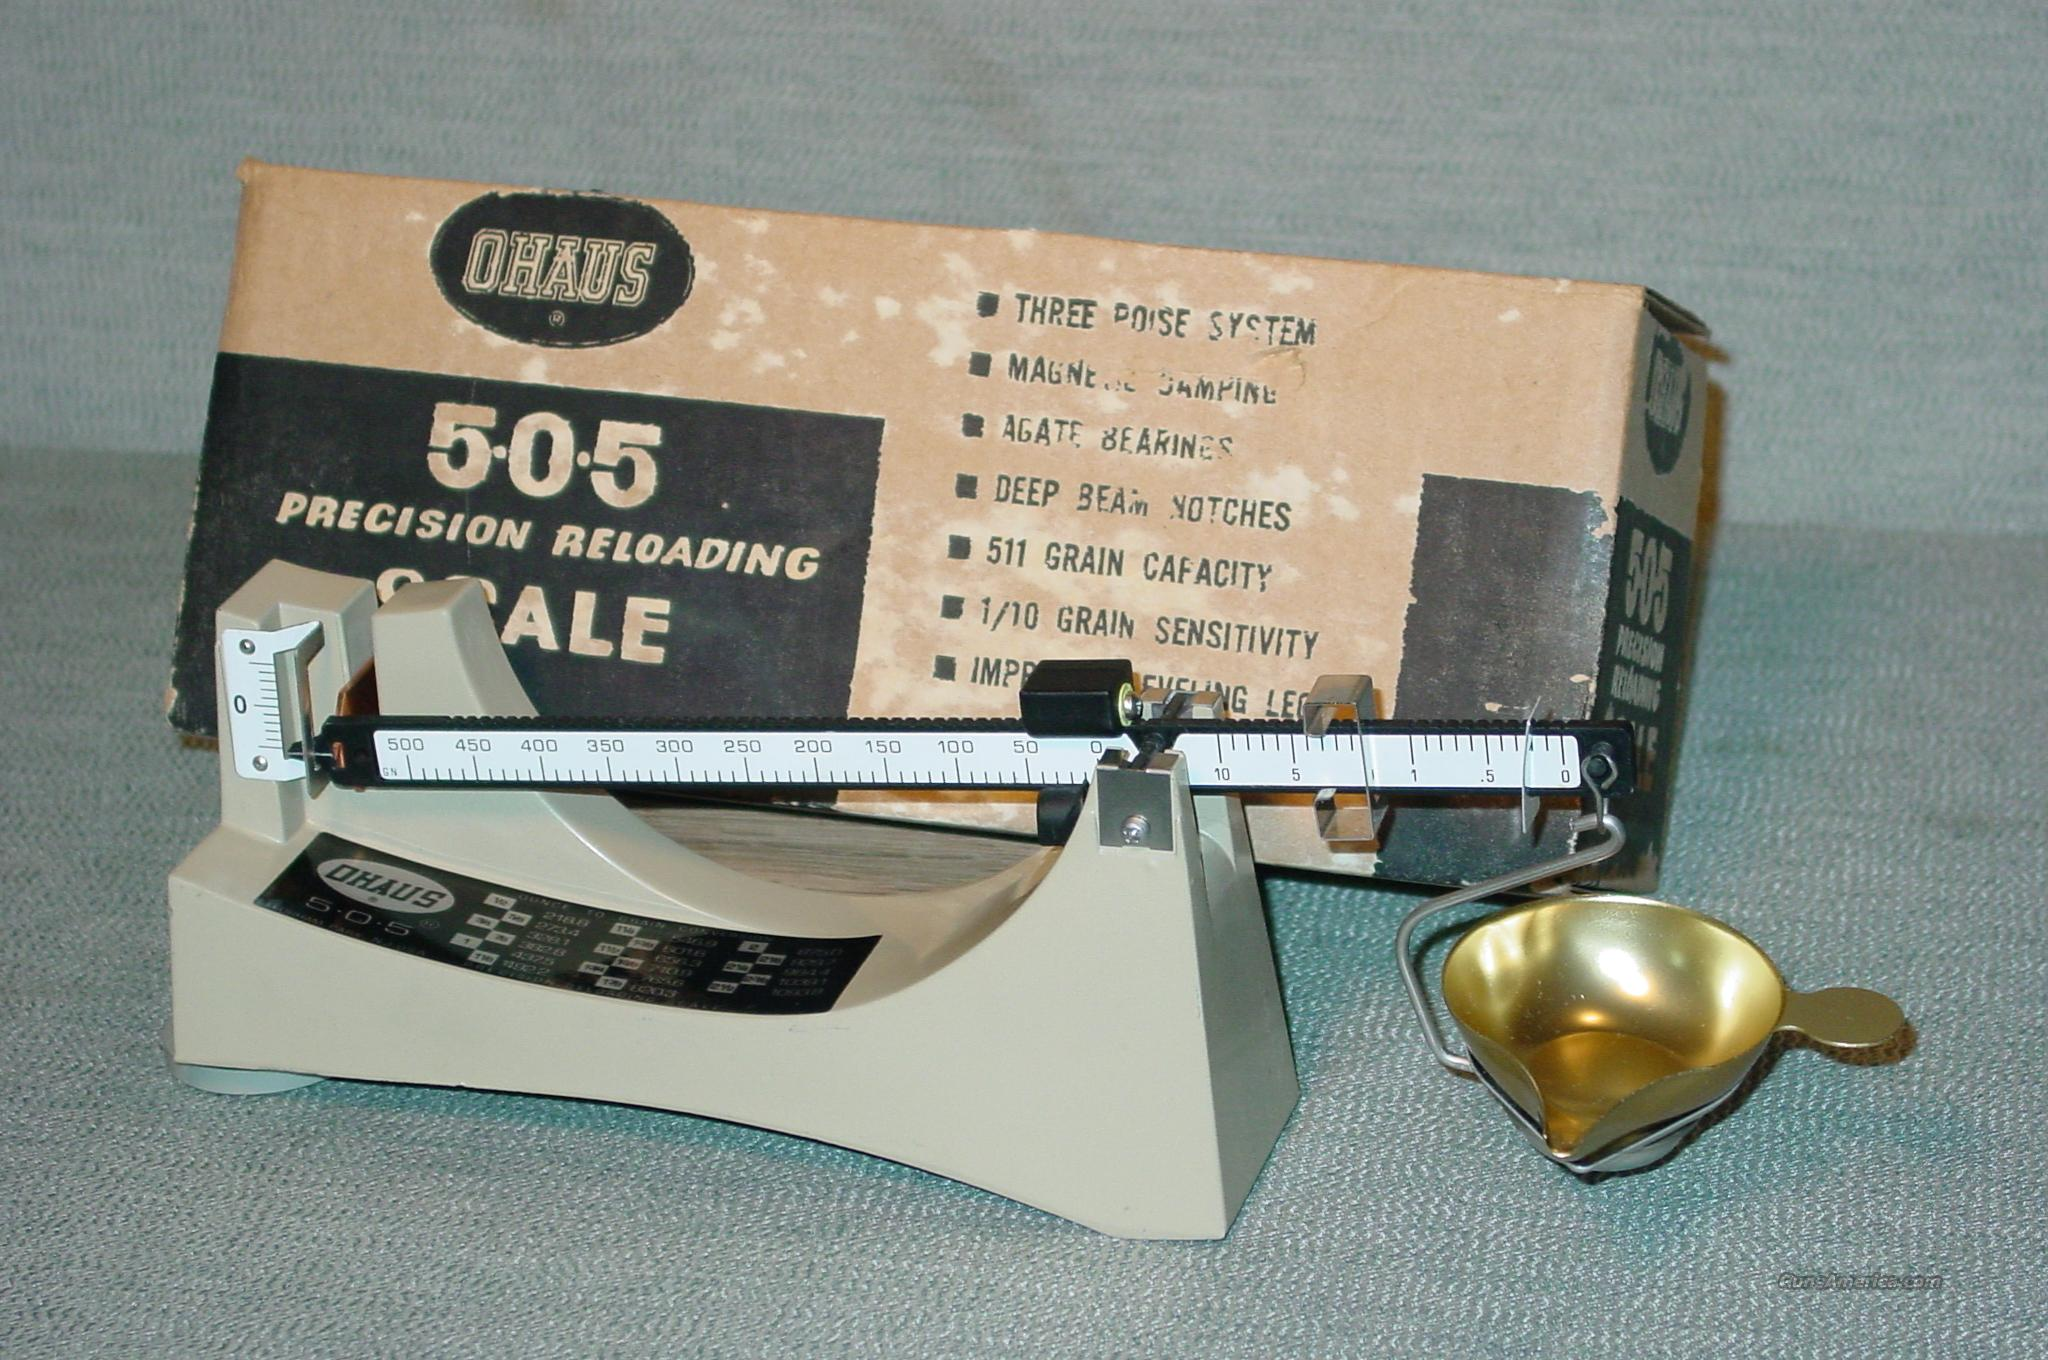 OHAUS 505 Precision Reloading Scale  Non-Guns > Reloading > Equipment > Shotshell > Misc